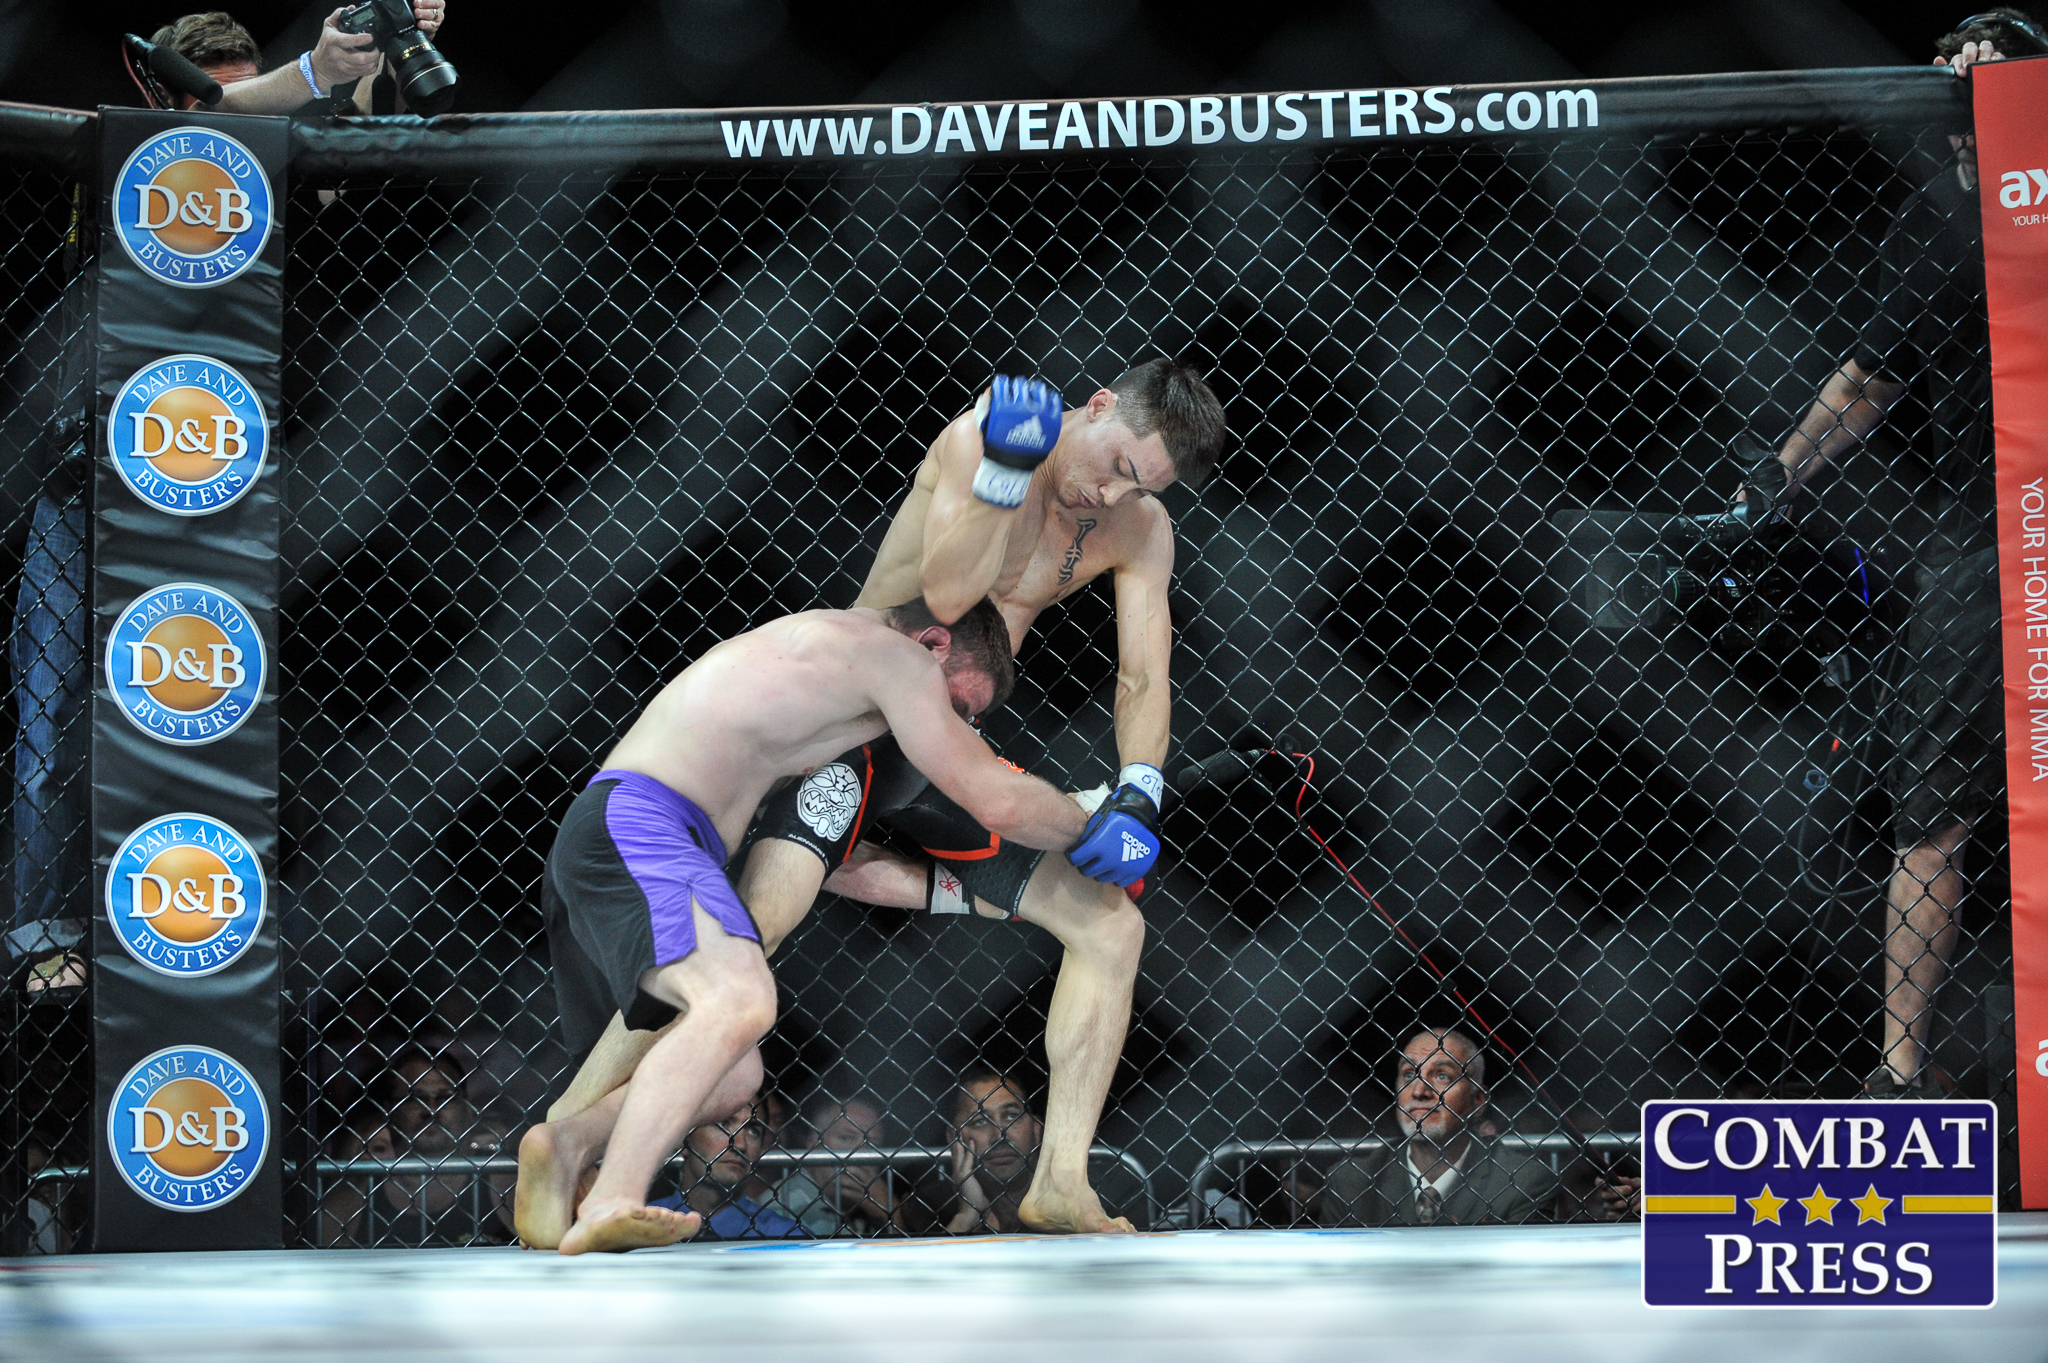 Boston Salmon (R) vs. Zac Chavez (Phil Lambert/Combat Press)